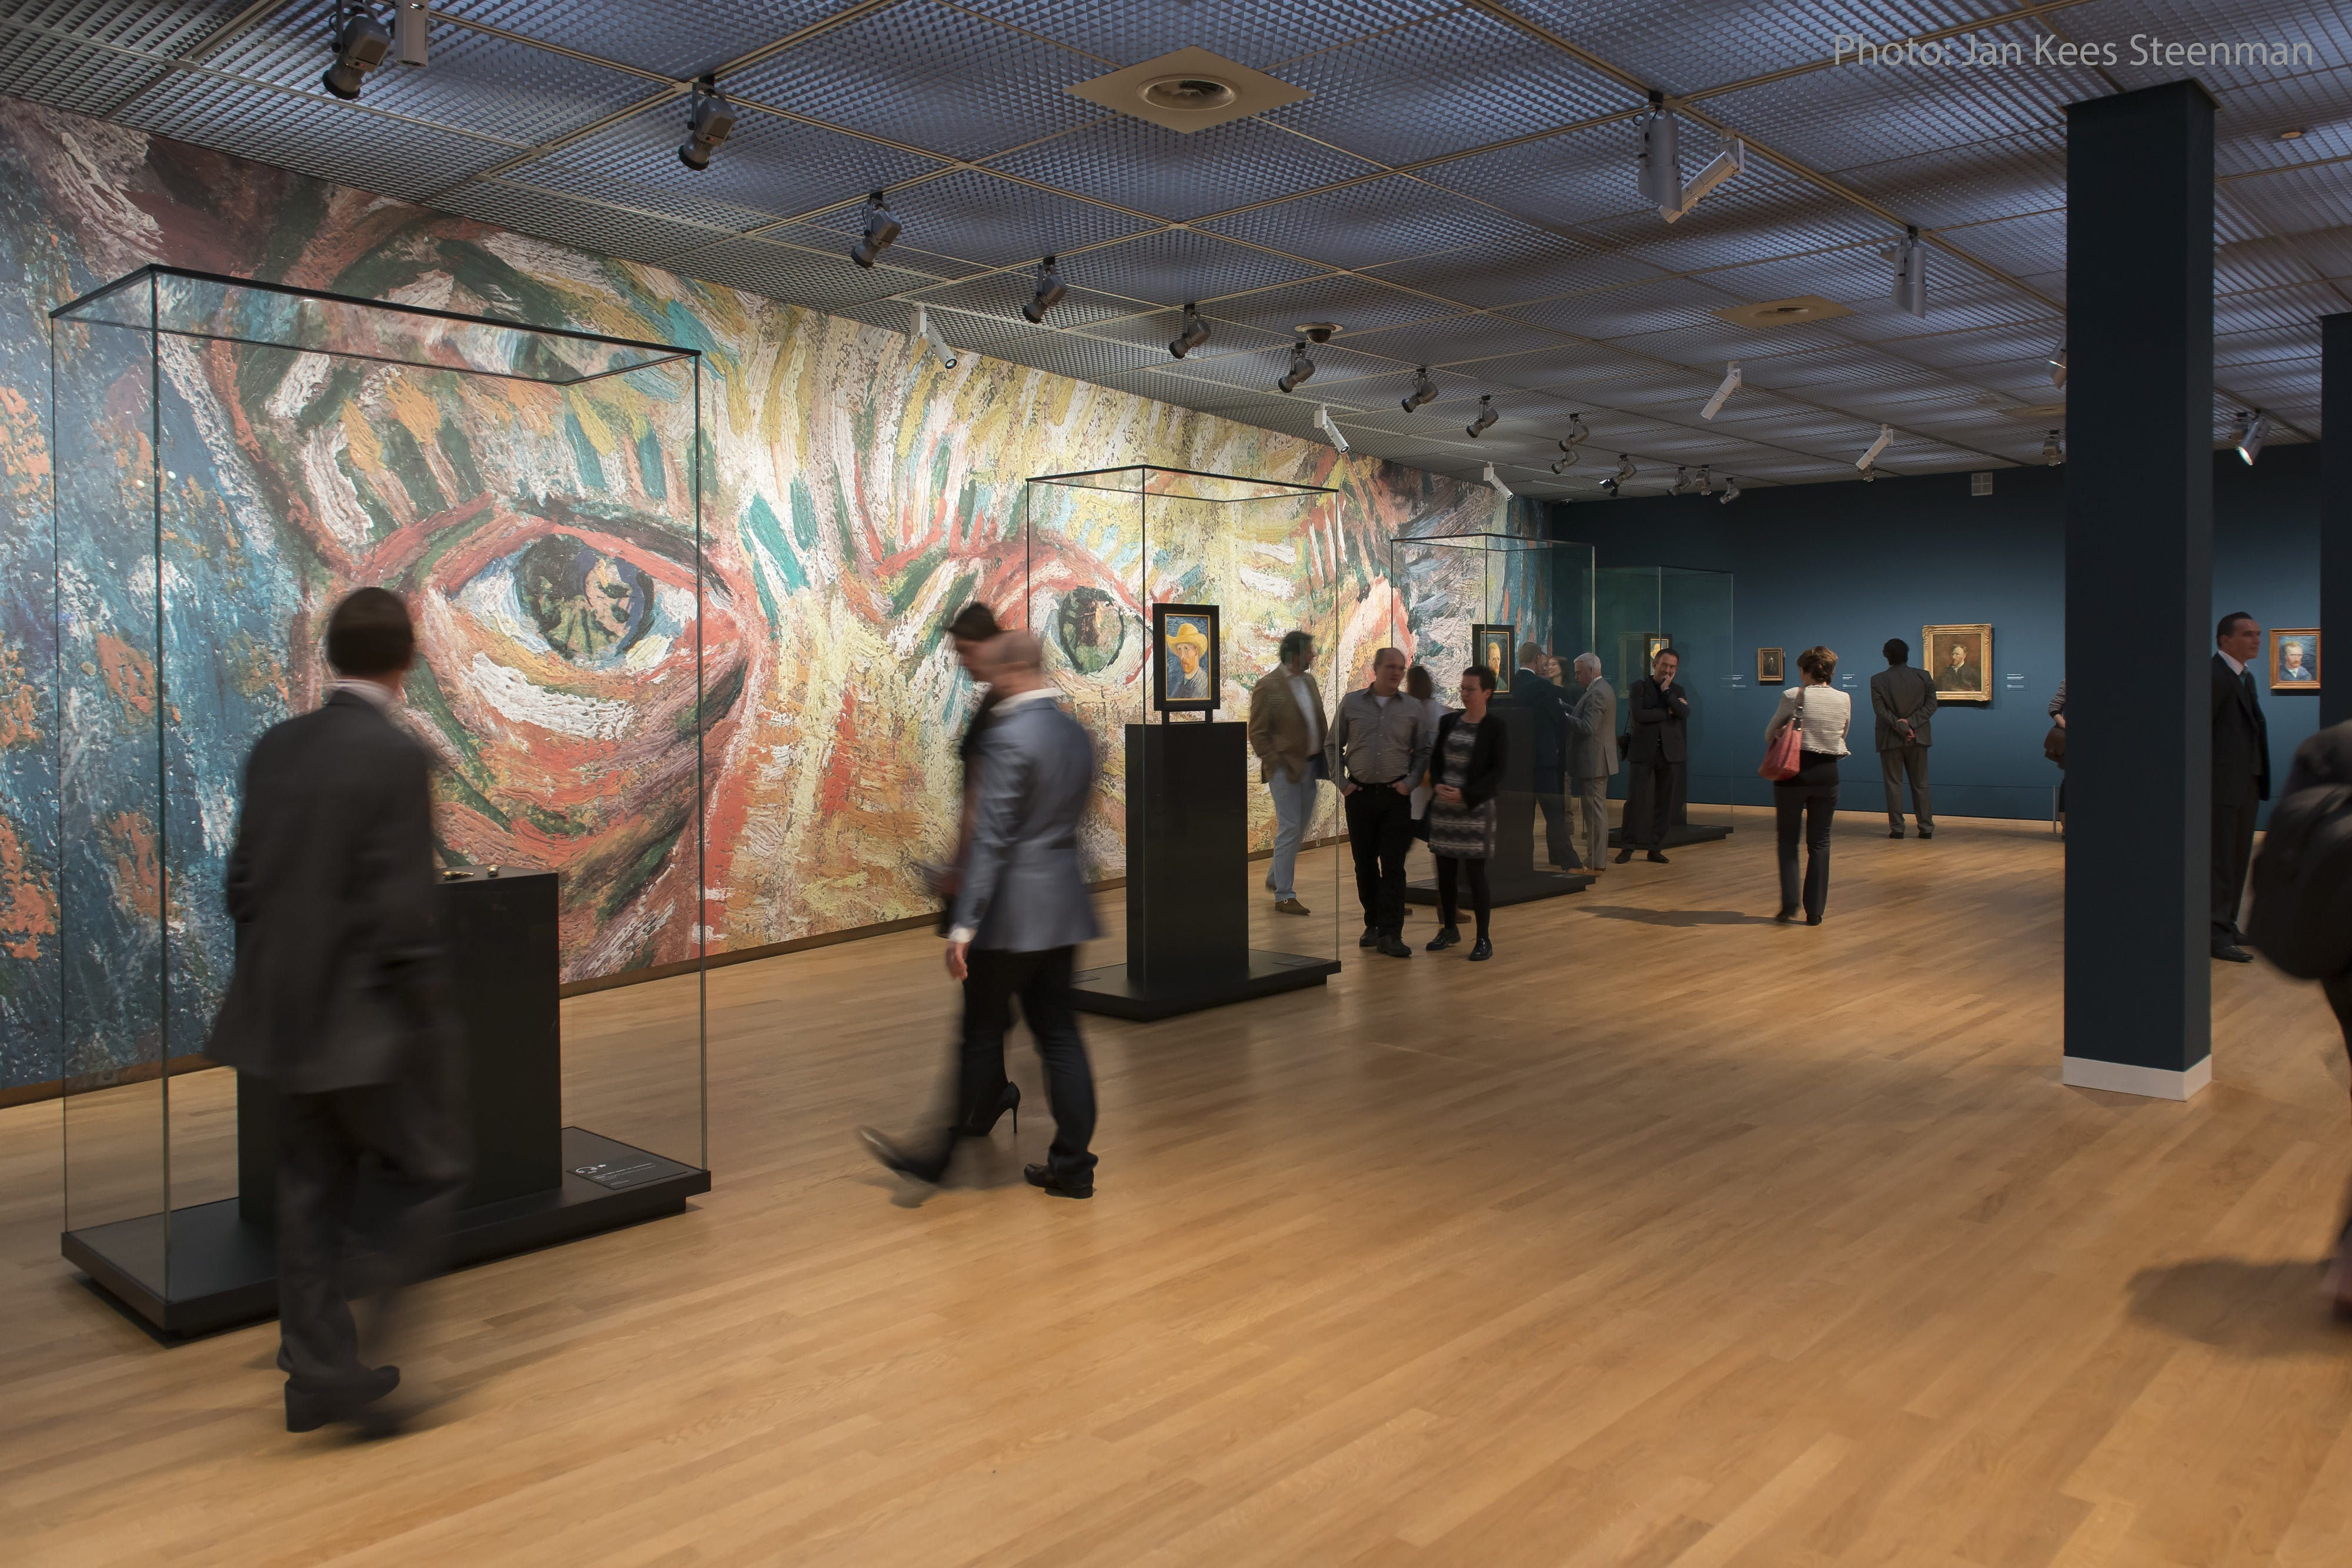 Van Gogh with photo credits inside museum with vitrines